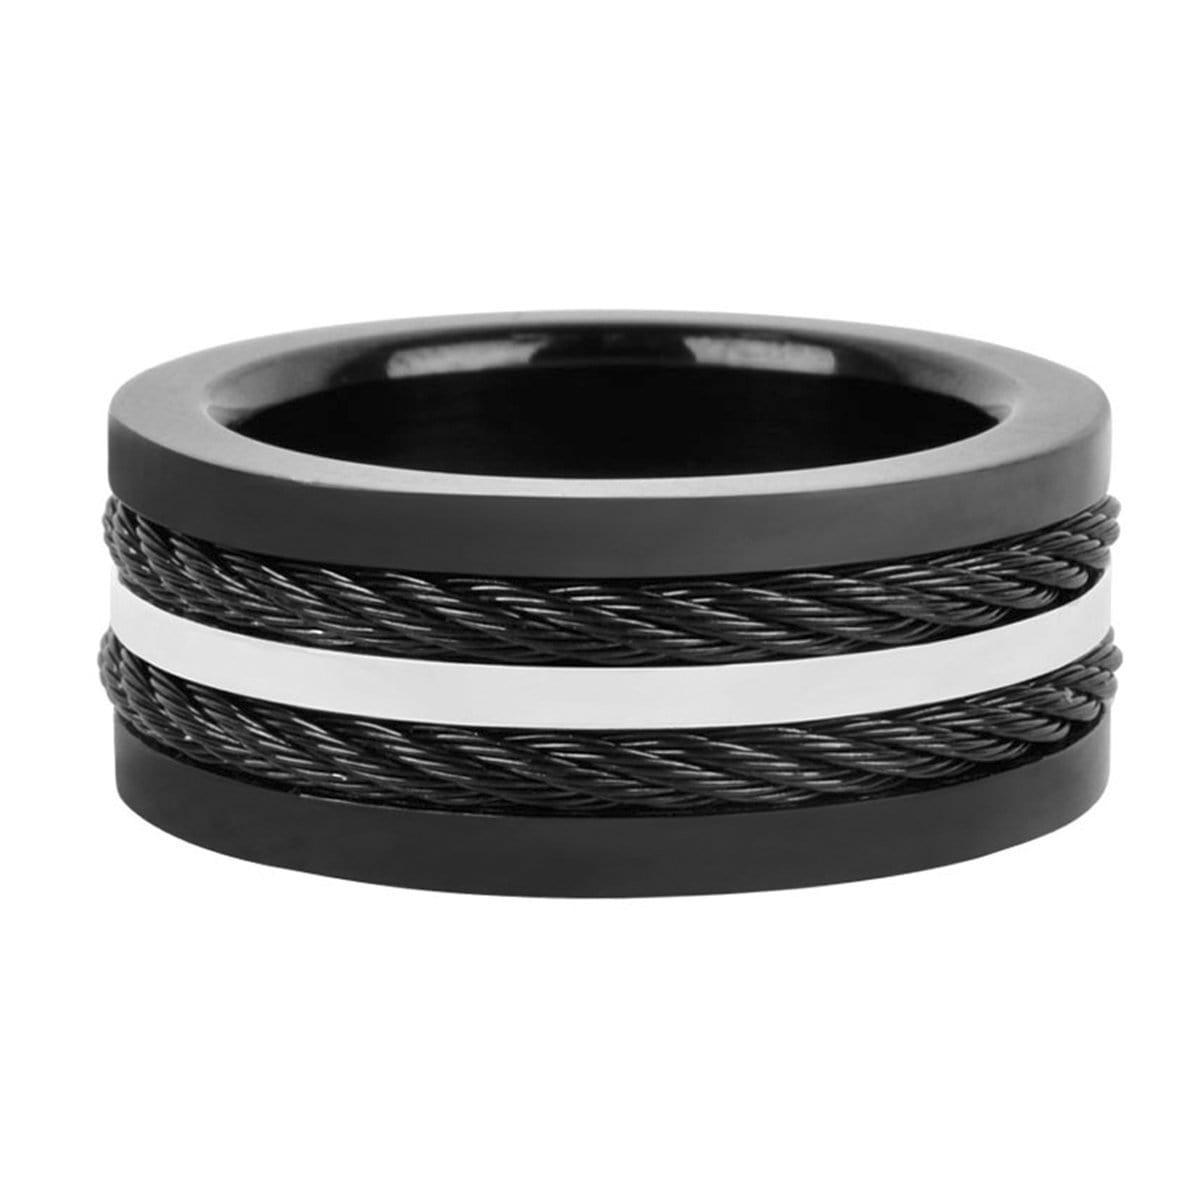 Black & Silver Stainless Steel Urbanight Double Twist Cable Ring Rings